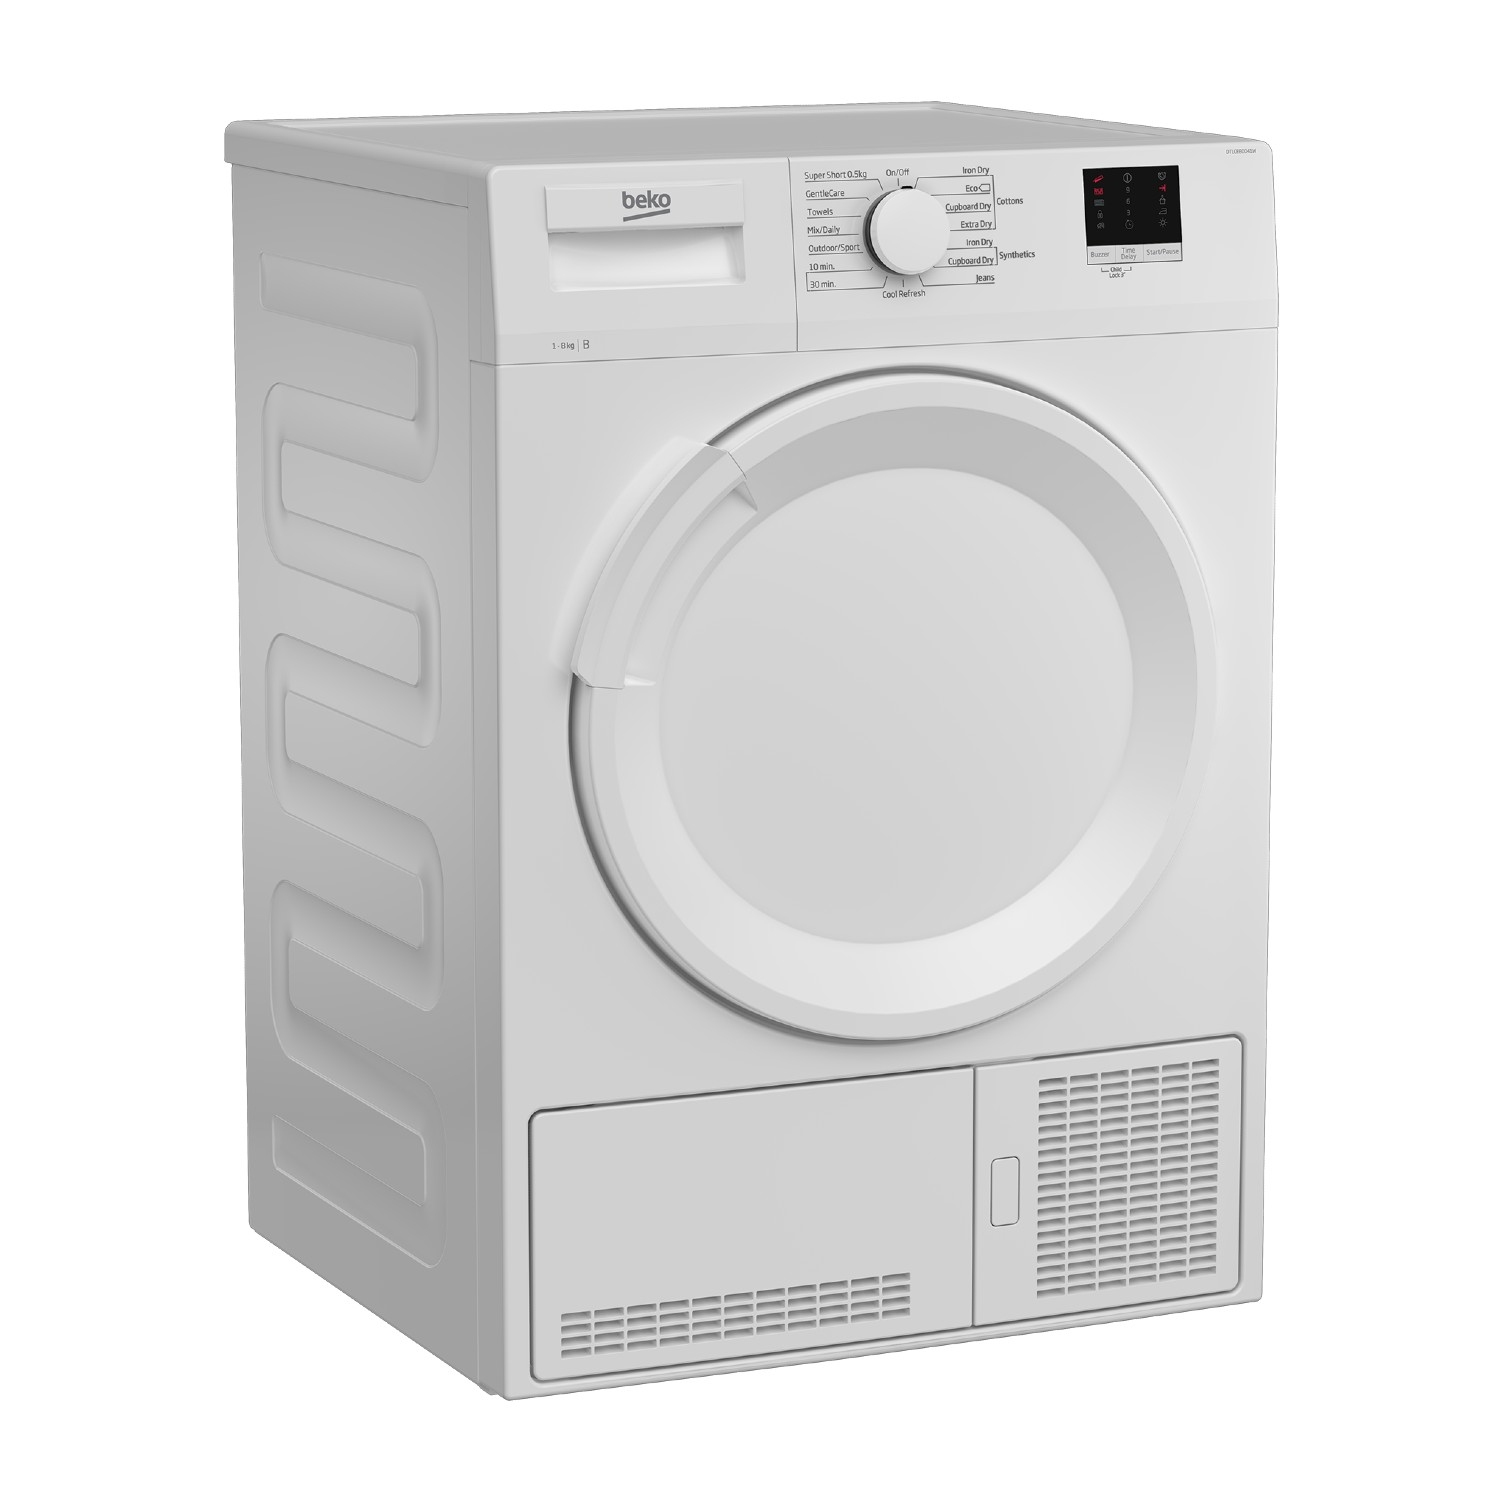 Beko DTLCE80041W 8kg Condenser Tumble Dryer - White - 1